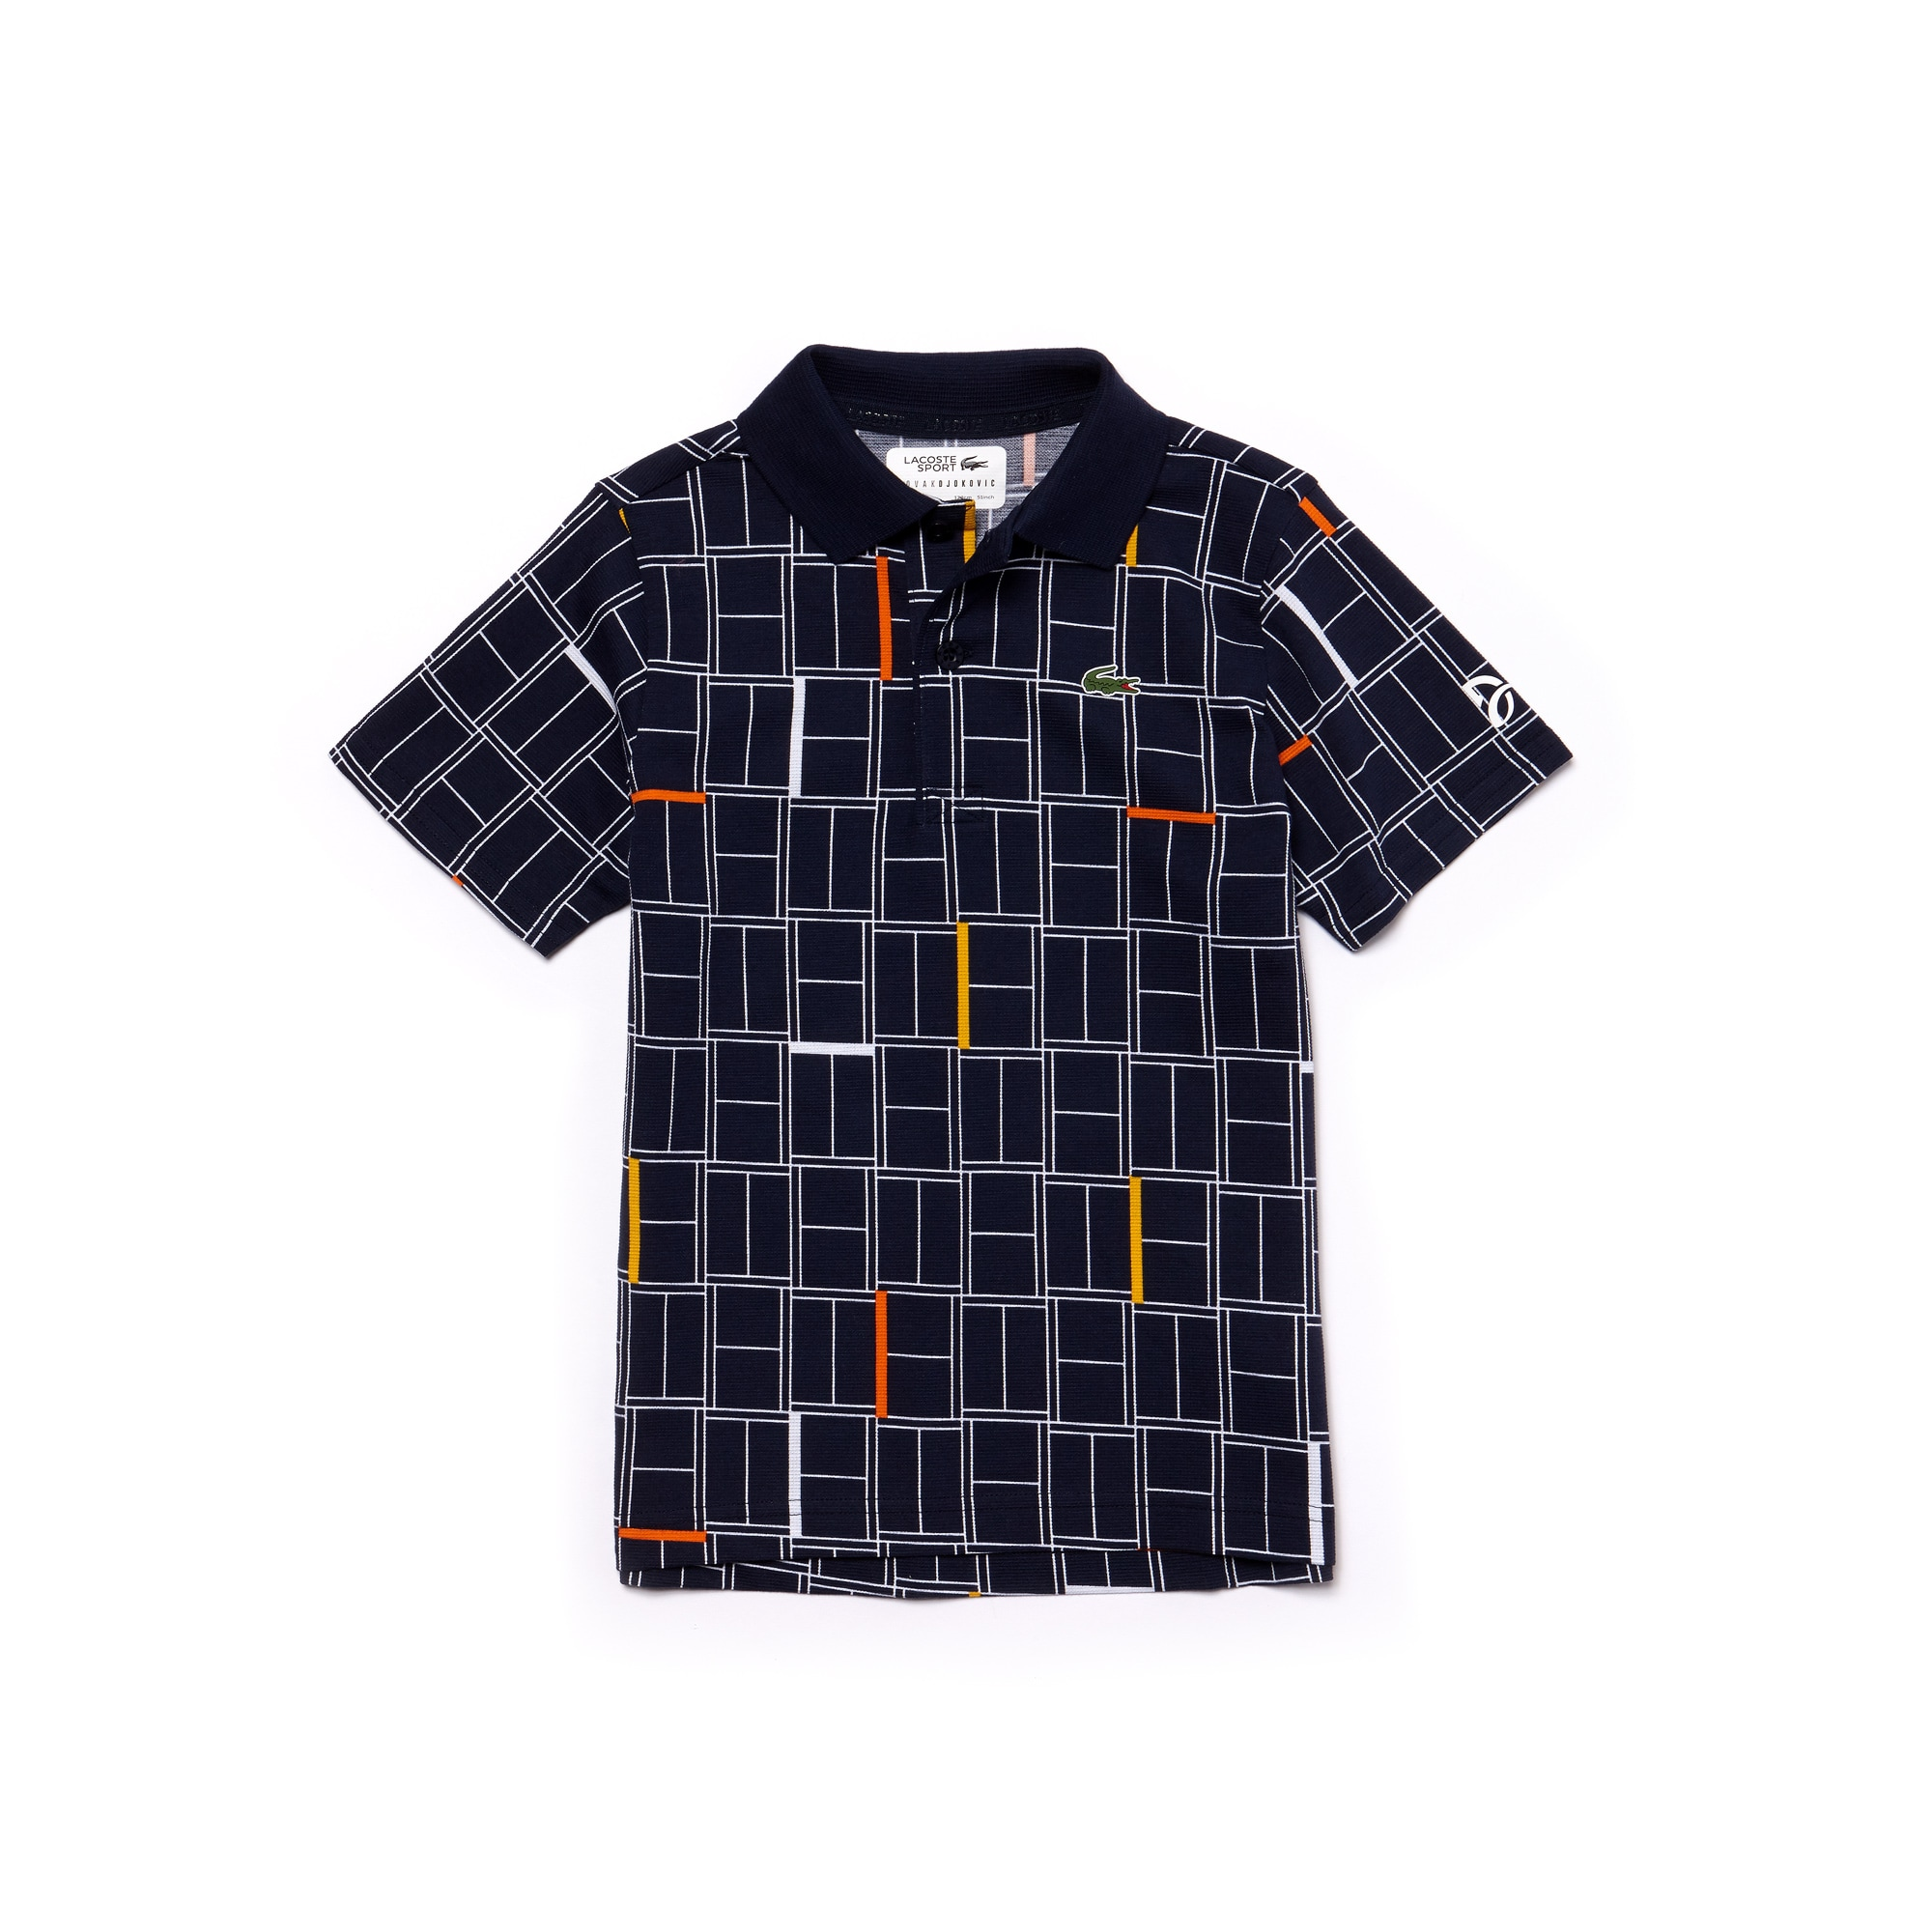 Boys' LACOSTE SPORT NOVAK DJOKOVIC COLLECTION Print Light Cotton Polo